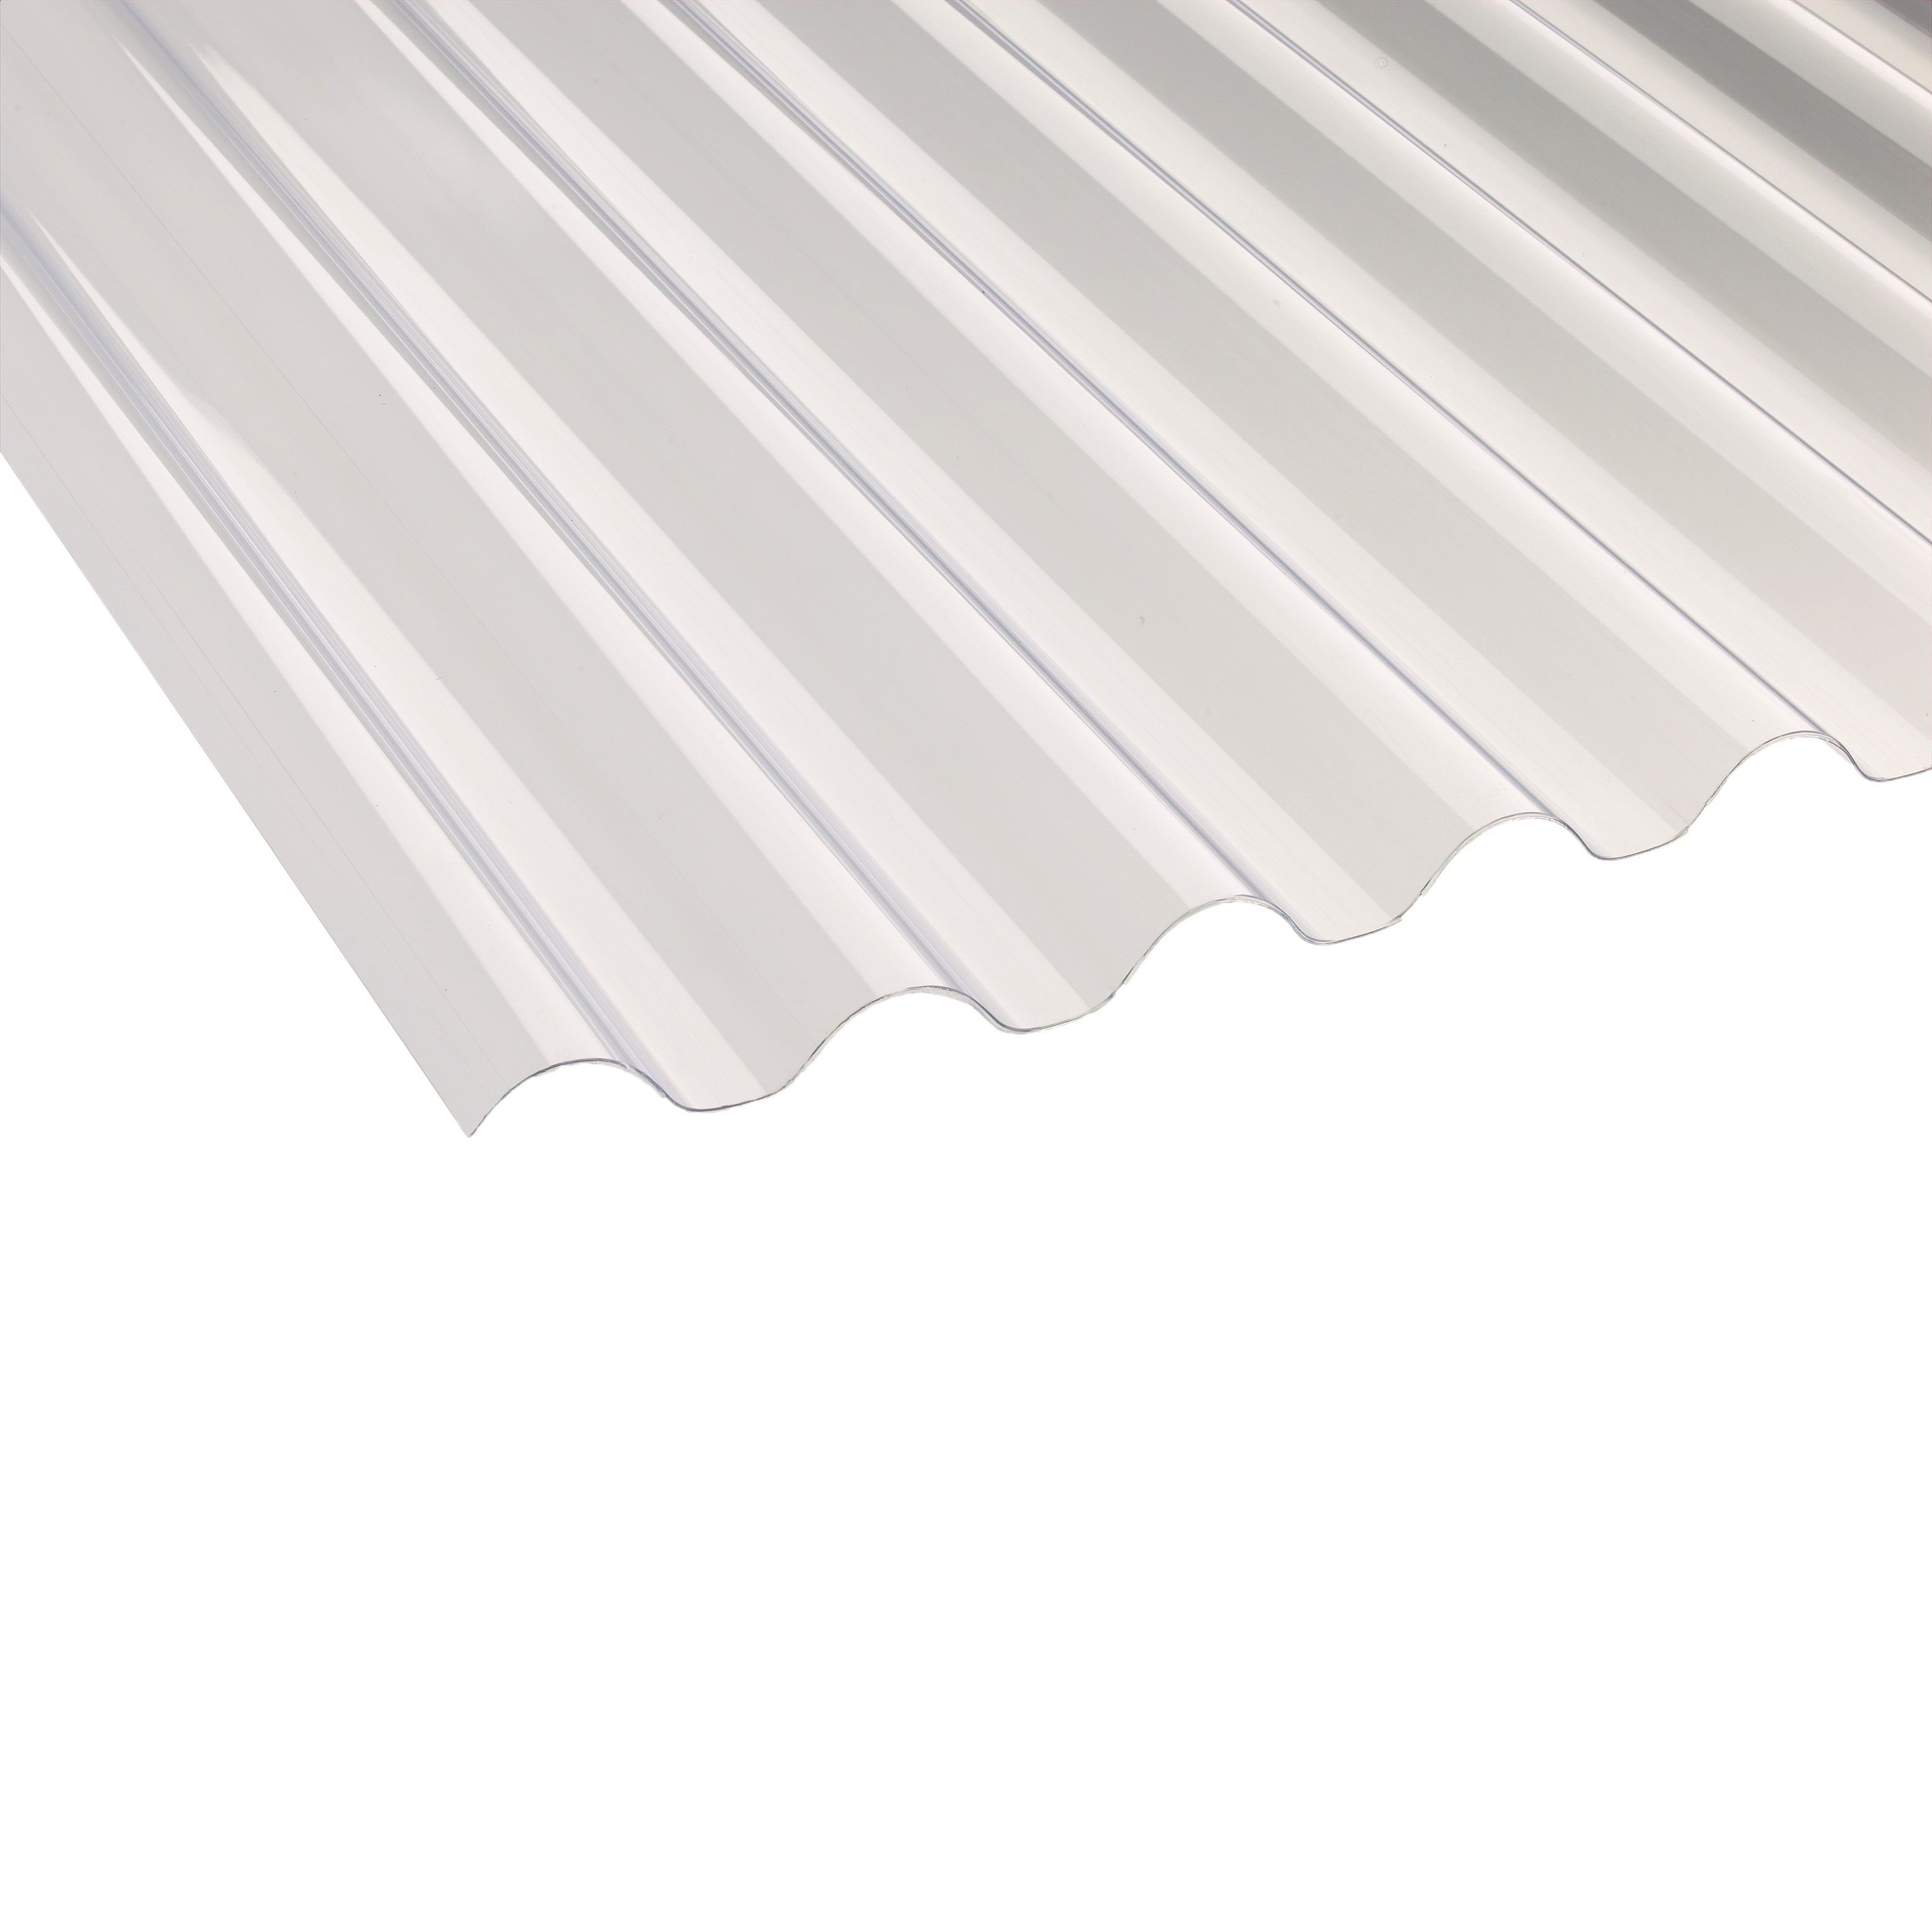 Clear Corrugated Pvc Roofing Sheet 2400mm X 660mm, Pack Of 10